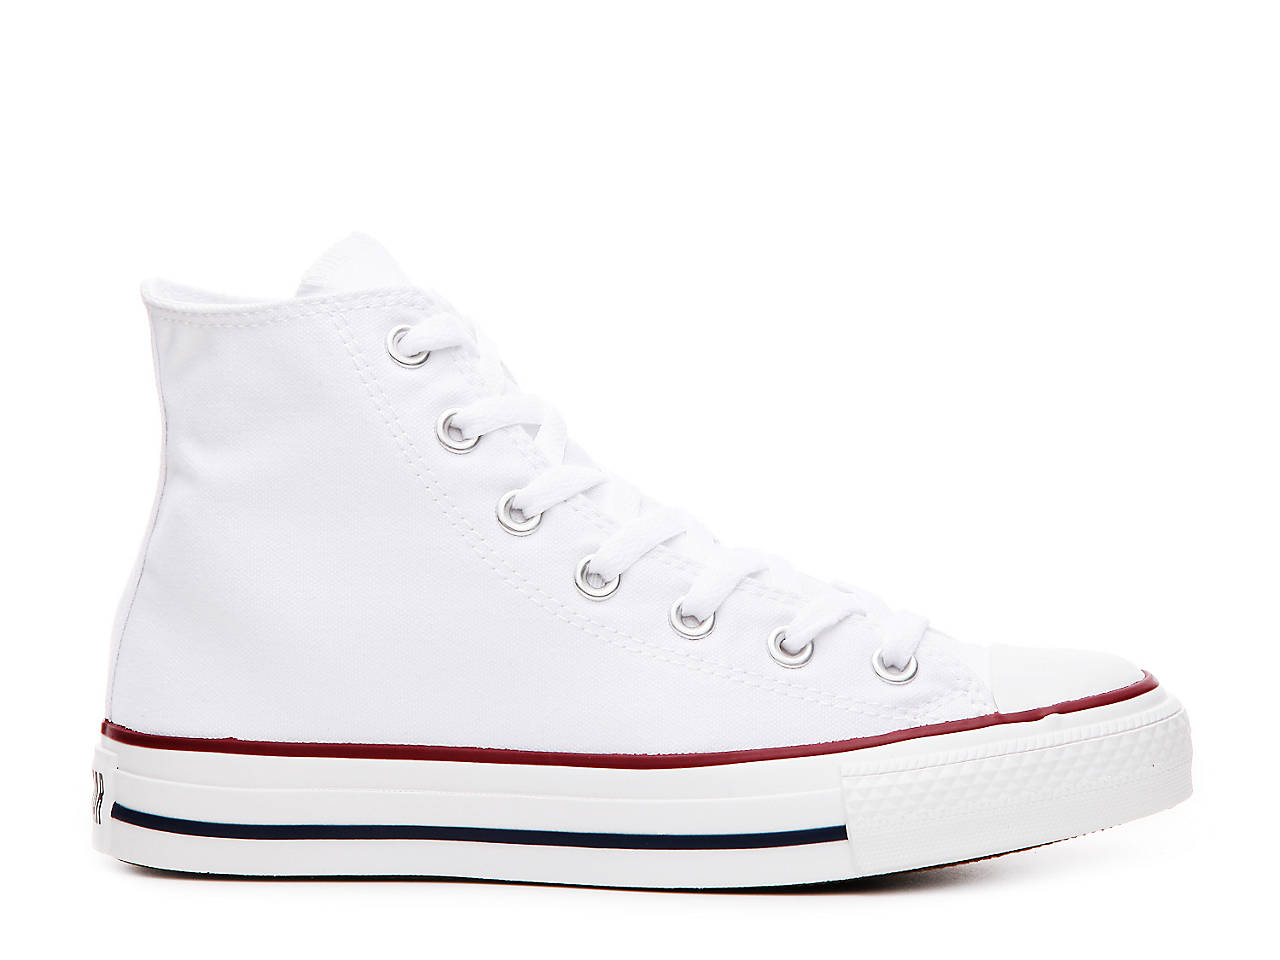 Converse Chuck Taylor All Star High-Top Sneaker - Women s Women s ... 81f9cc54f